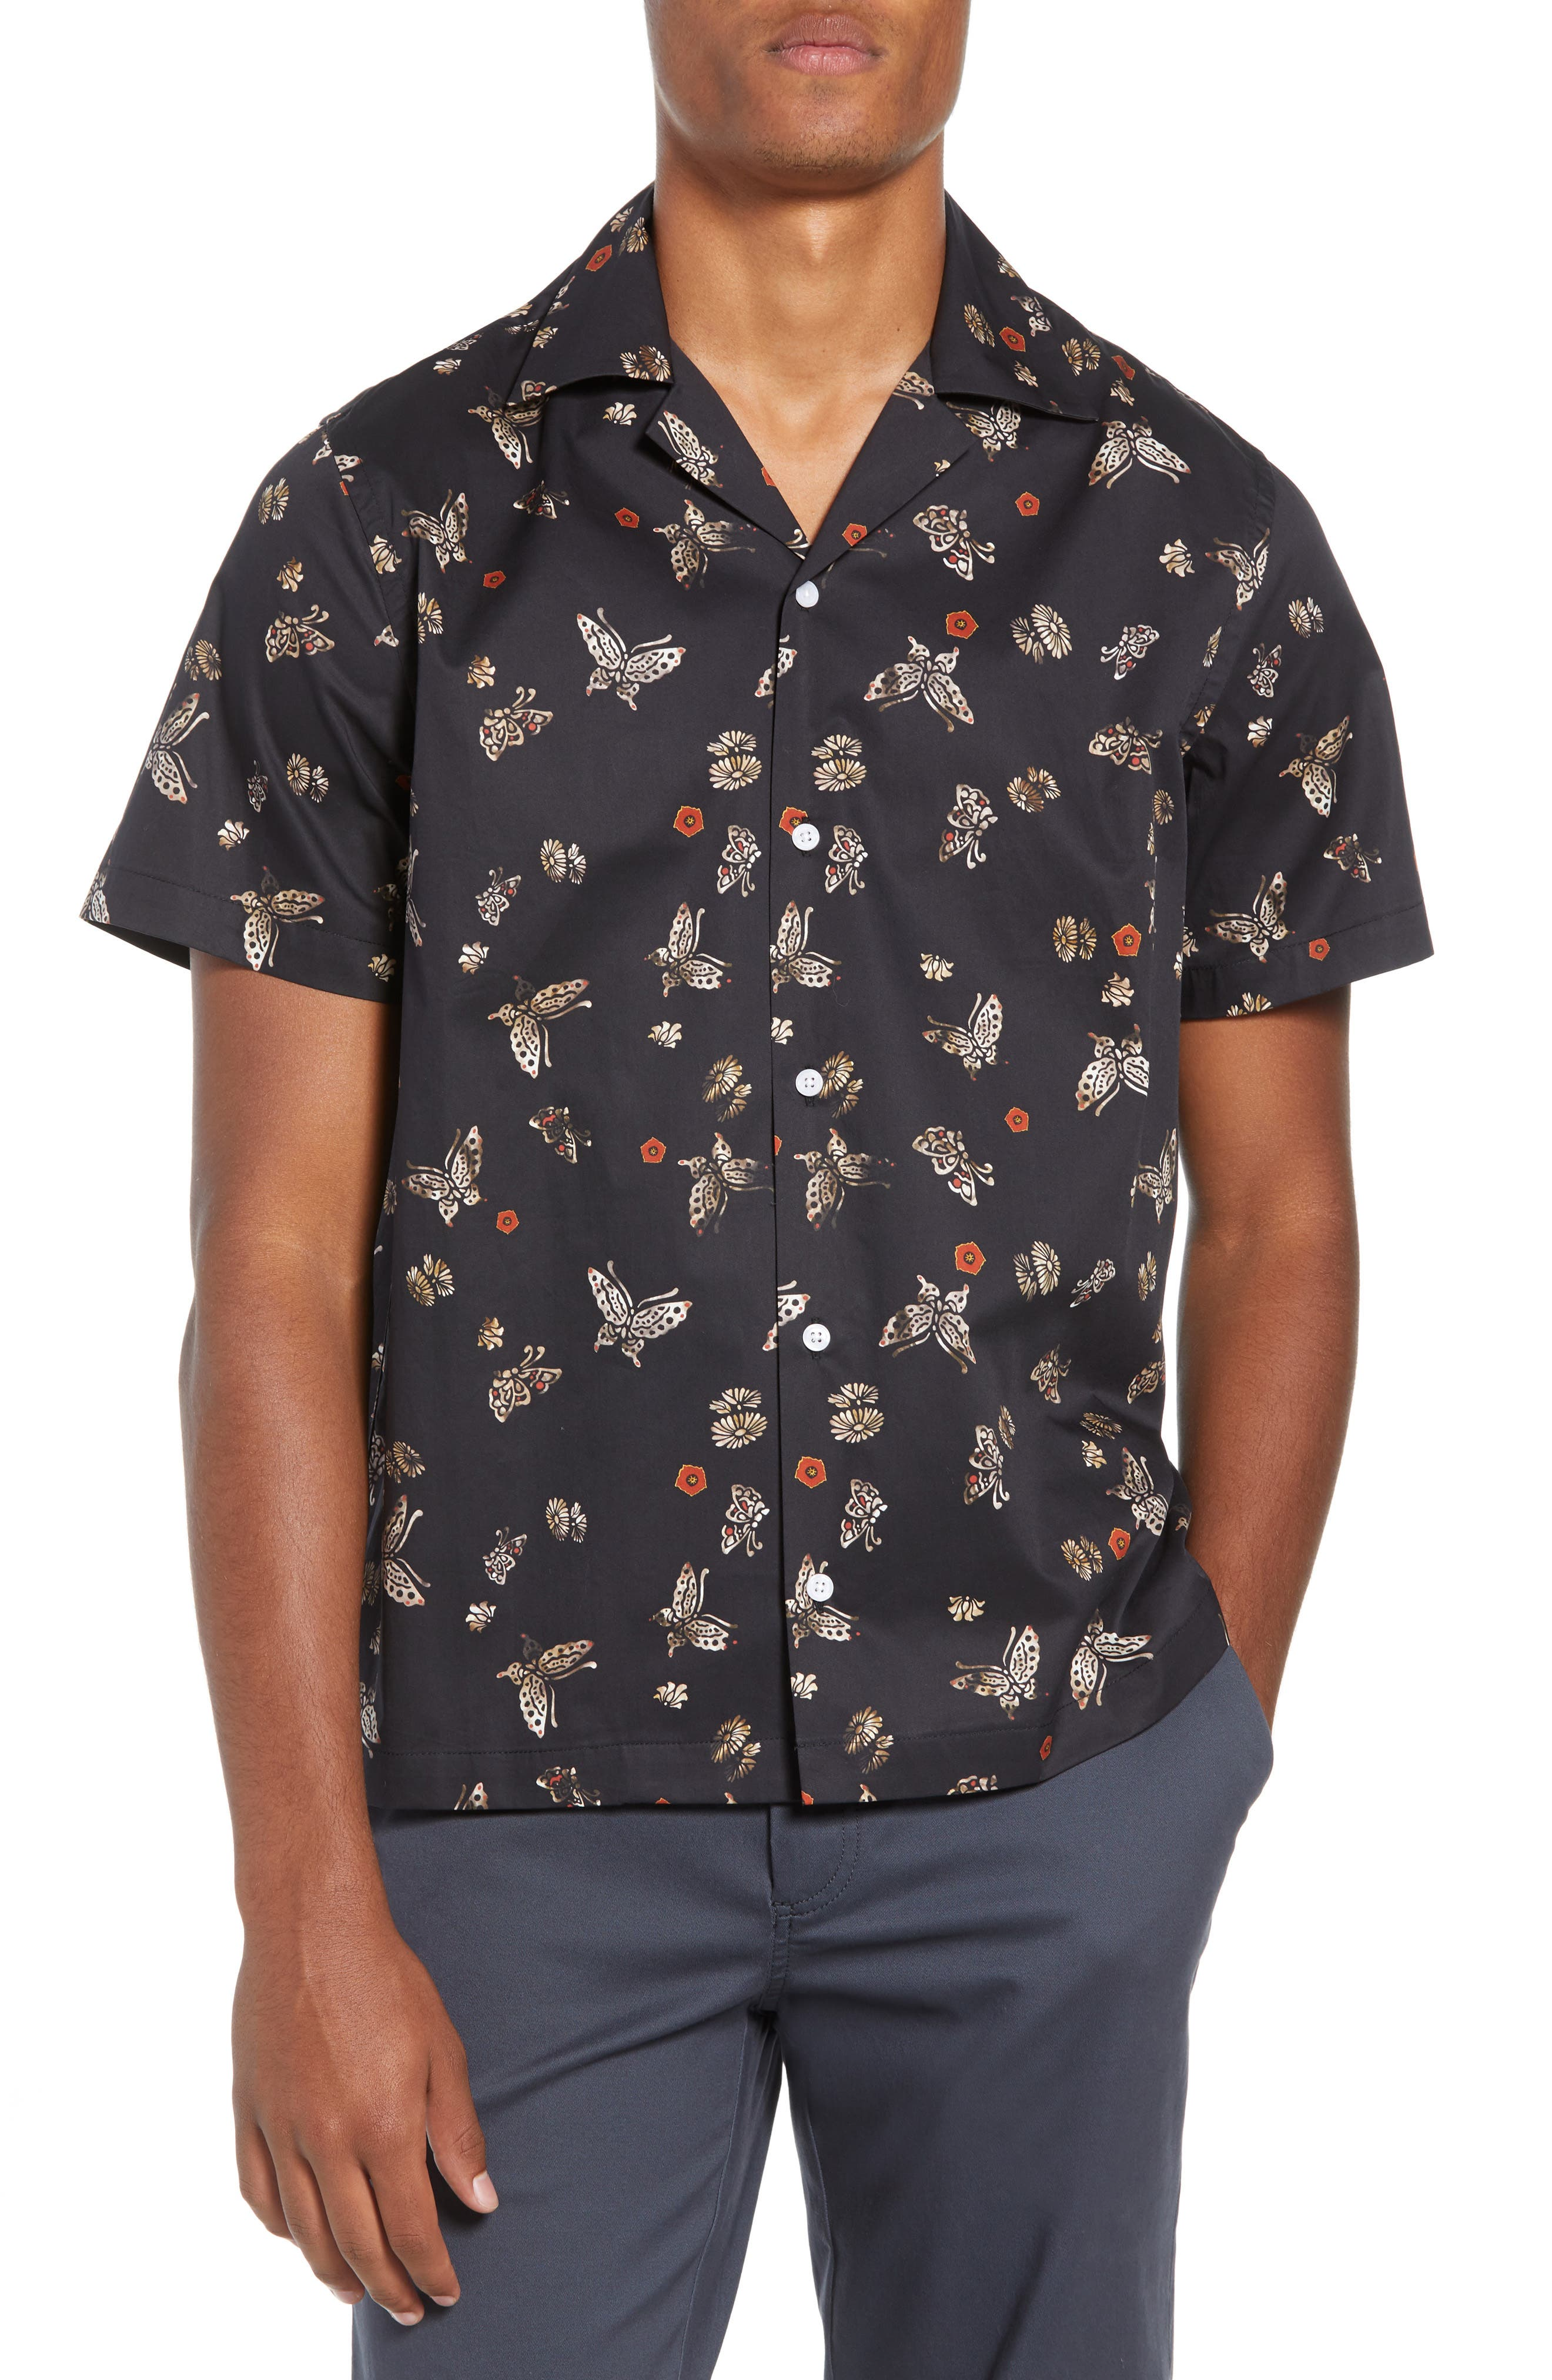 Canty Lacquer Butterfly Camp Shirt,                             Main thumbnail 1, color,                             LACQUER BUTTERFLY PRINT